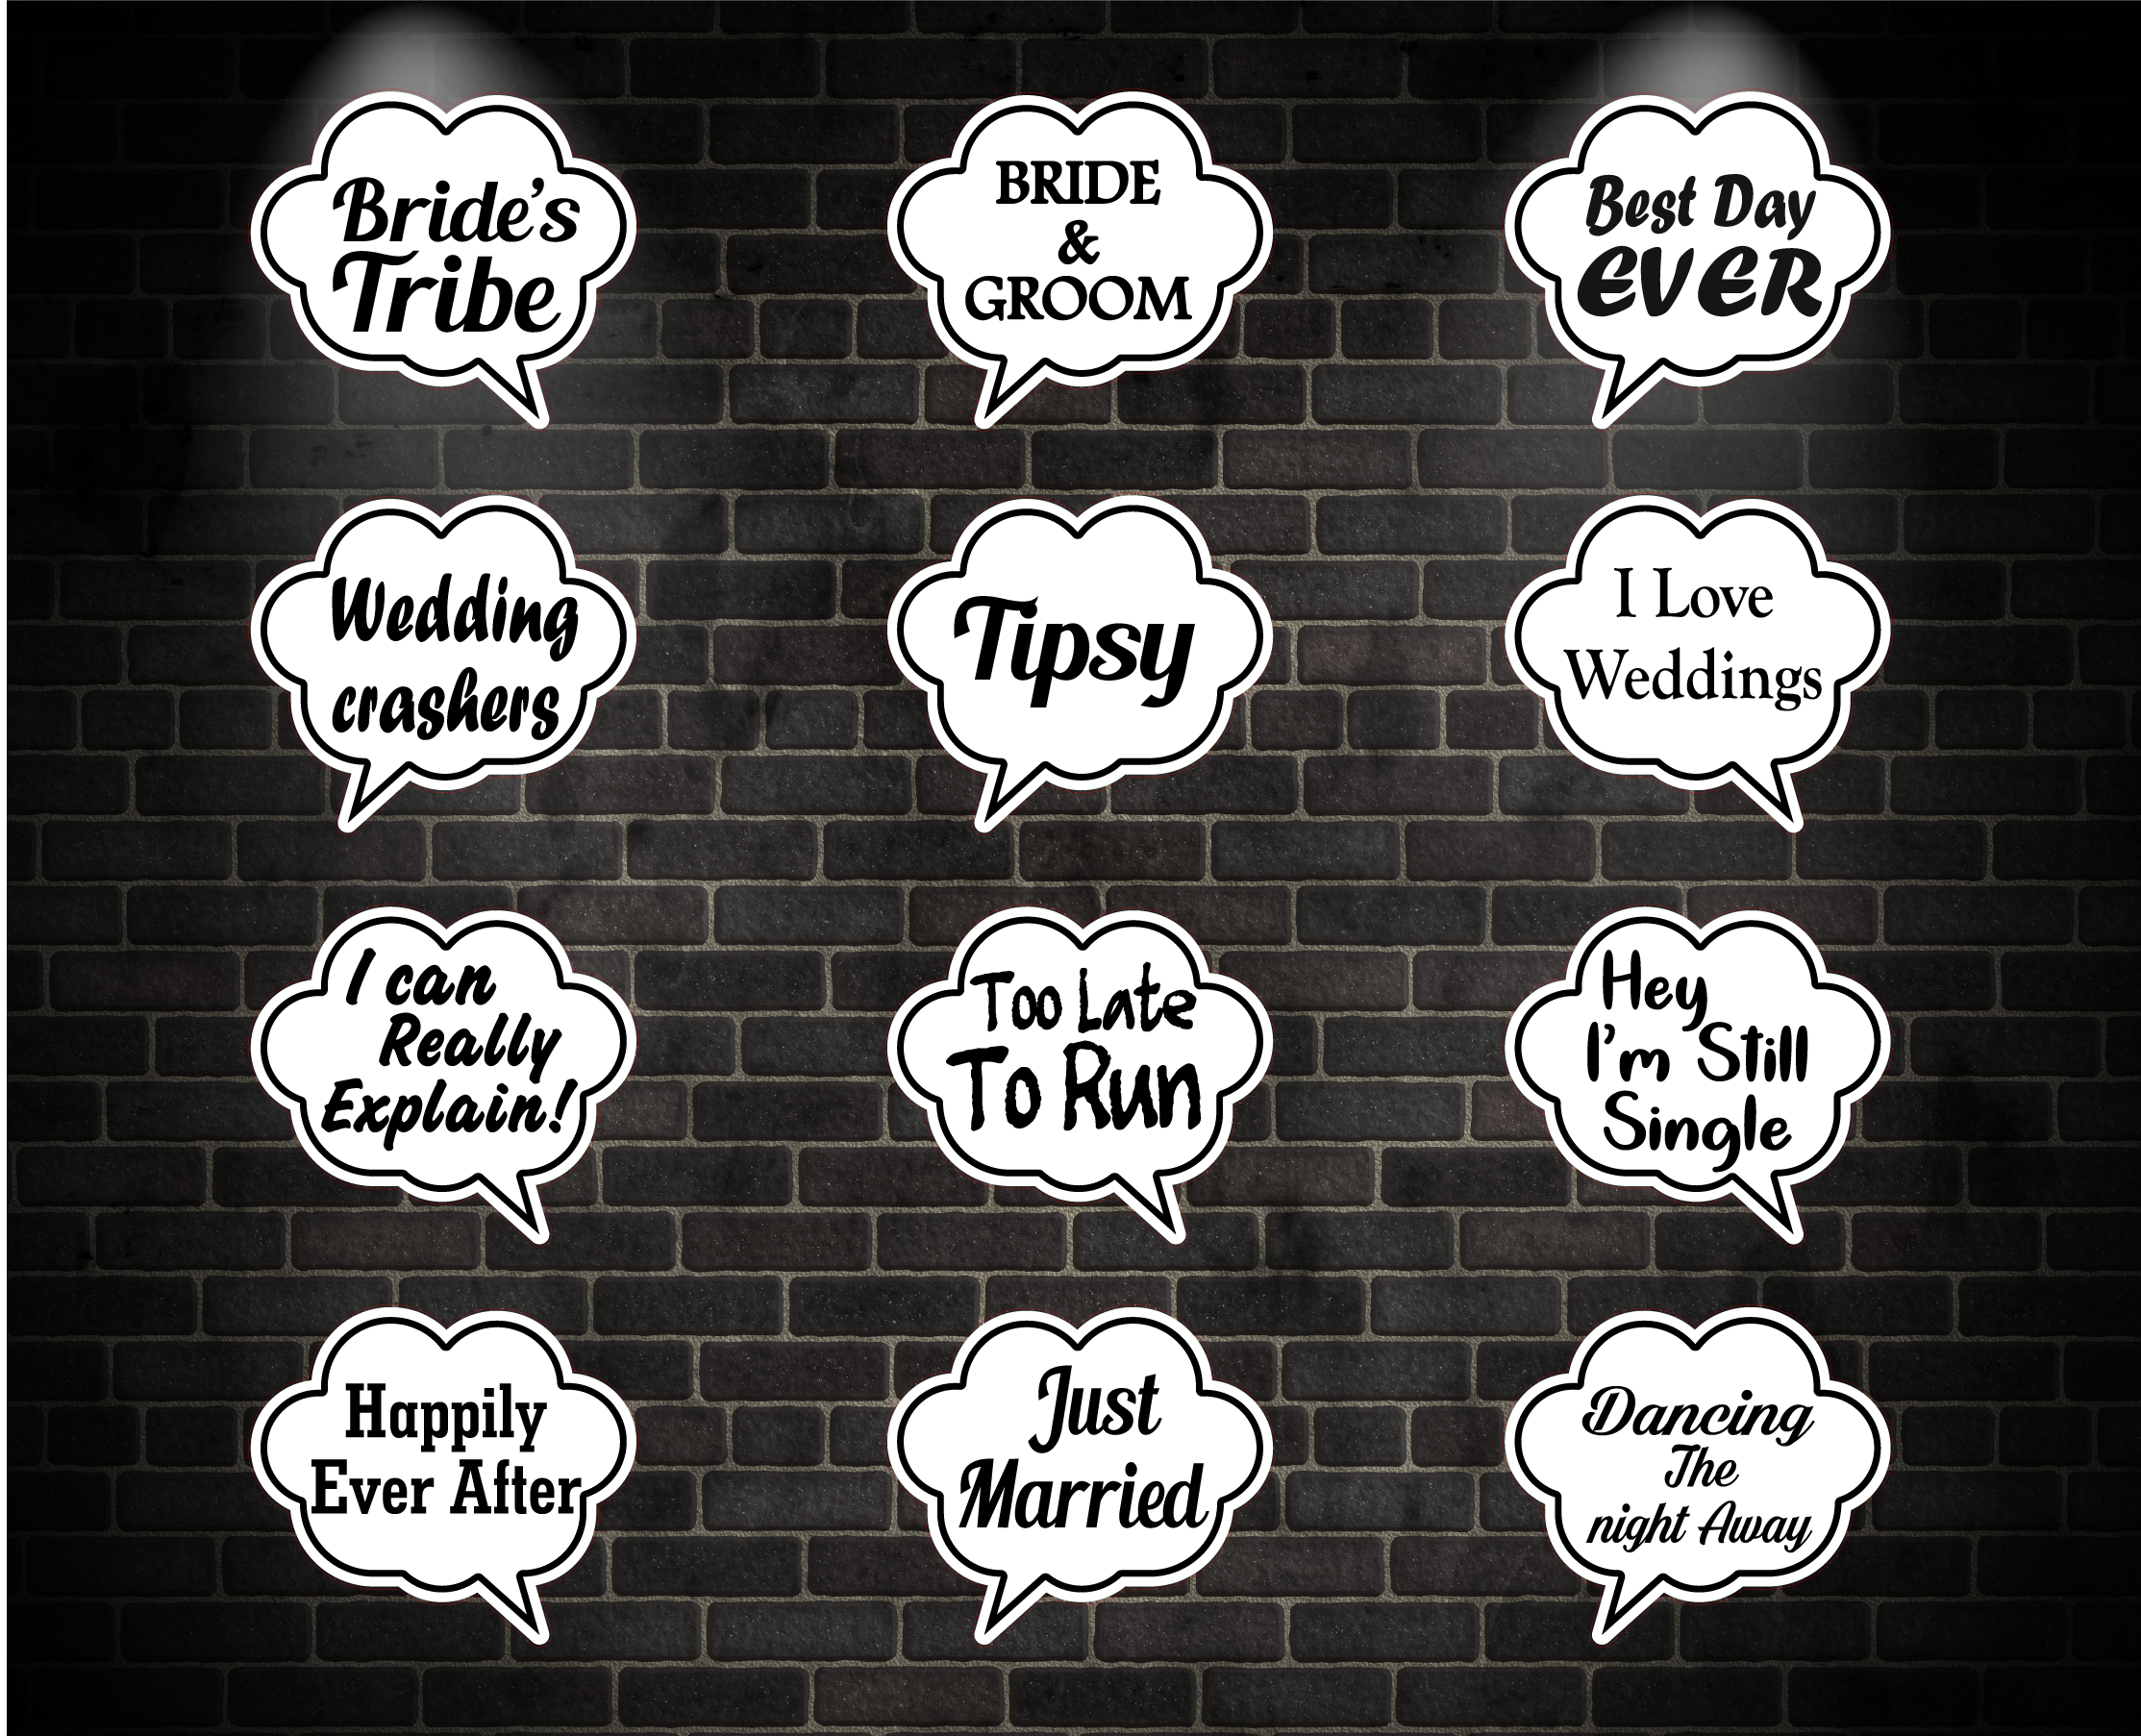 Wedding Oversized Speech Bubble Signs includes Free Shipping